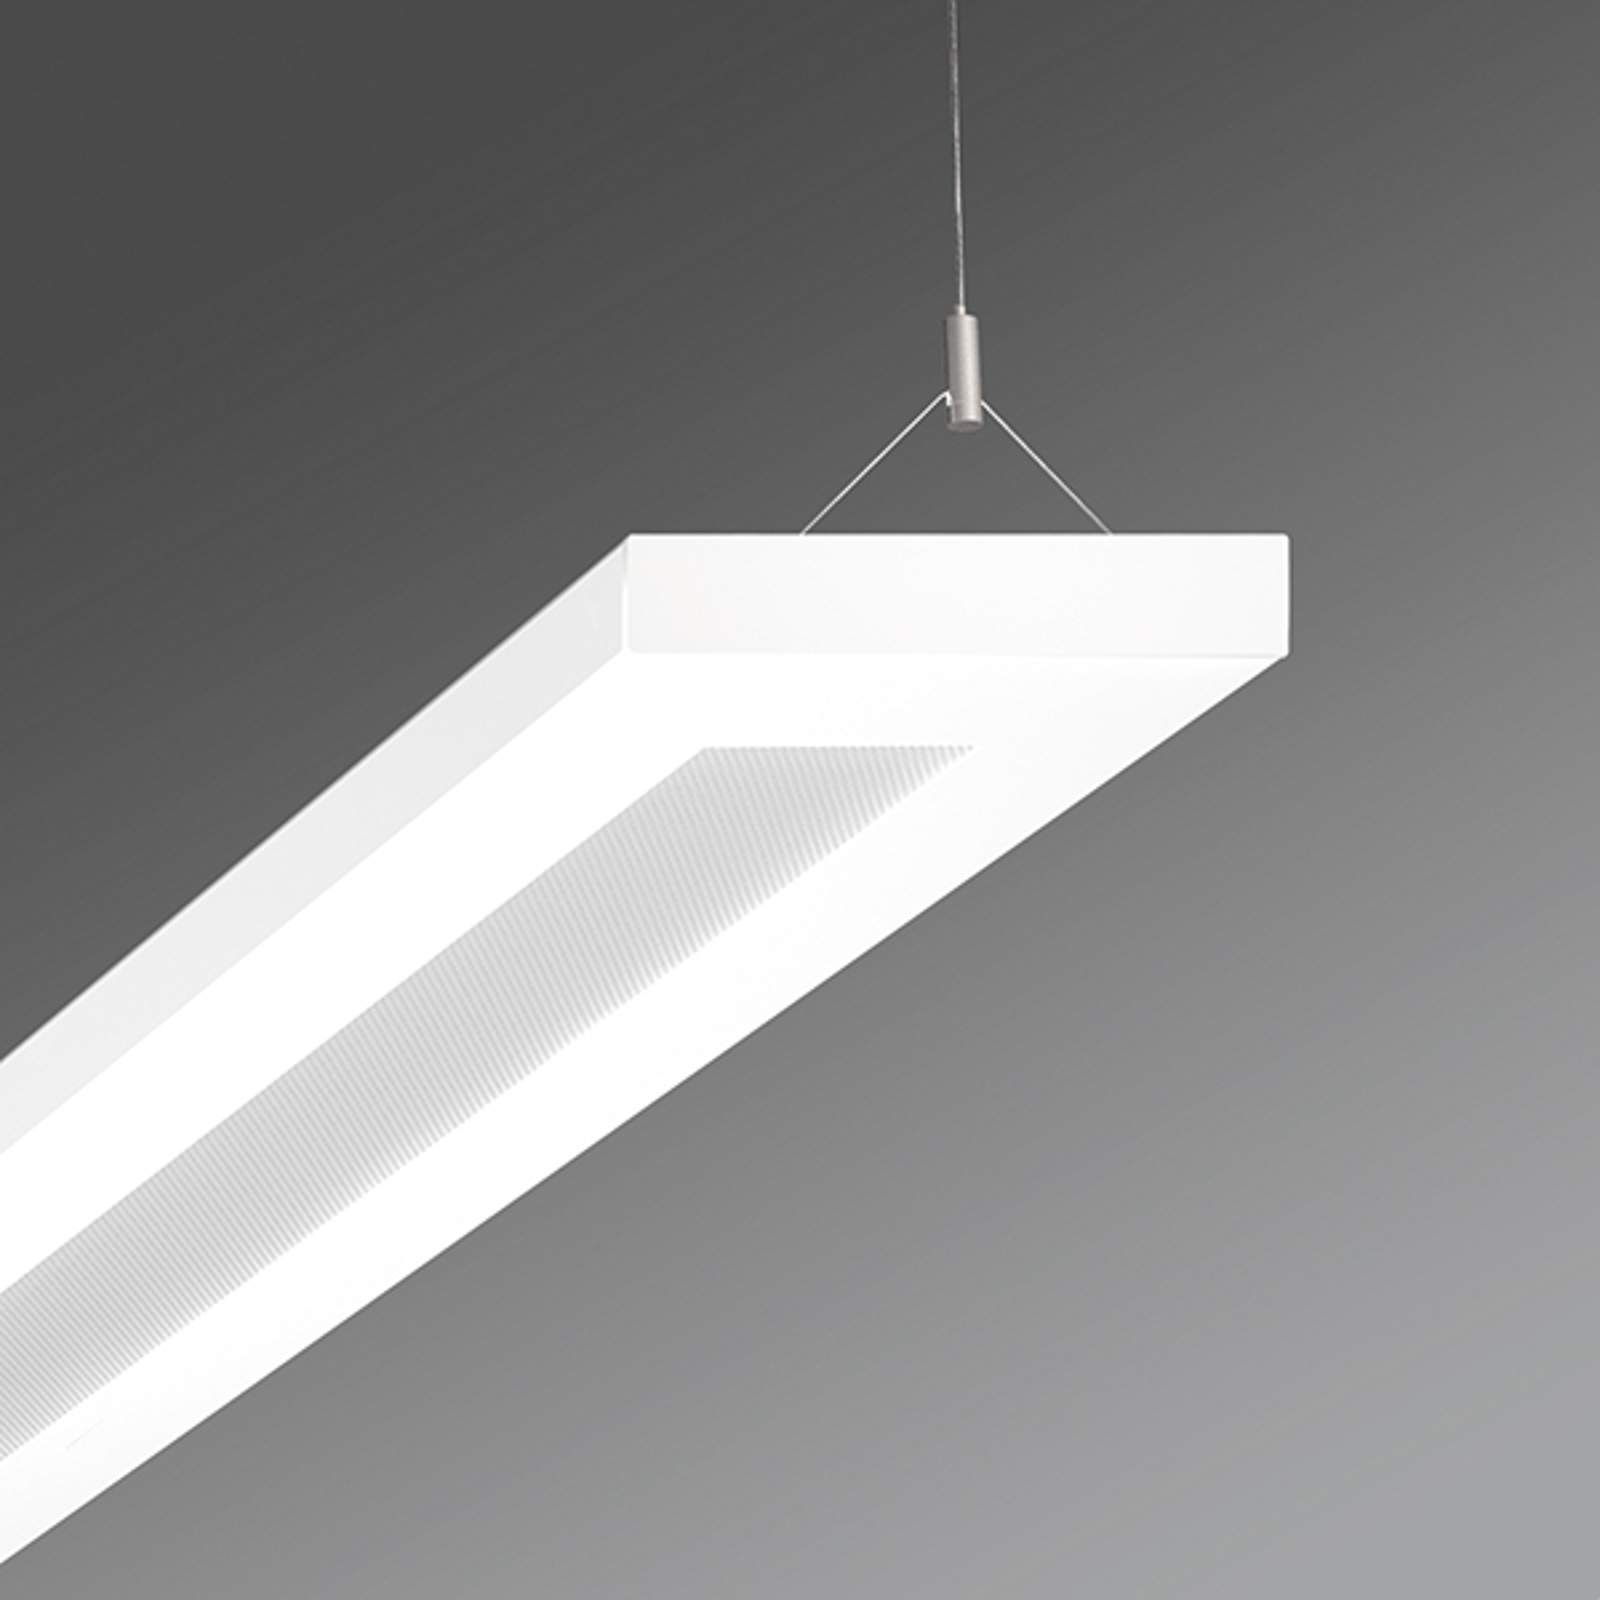 Y-kabel-ophanging SAY-DZ 190 voor hanglamp Stail